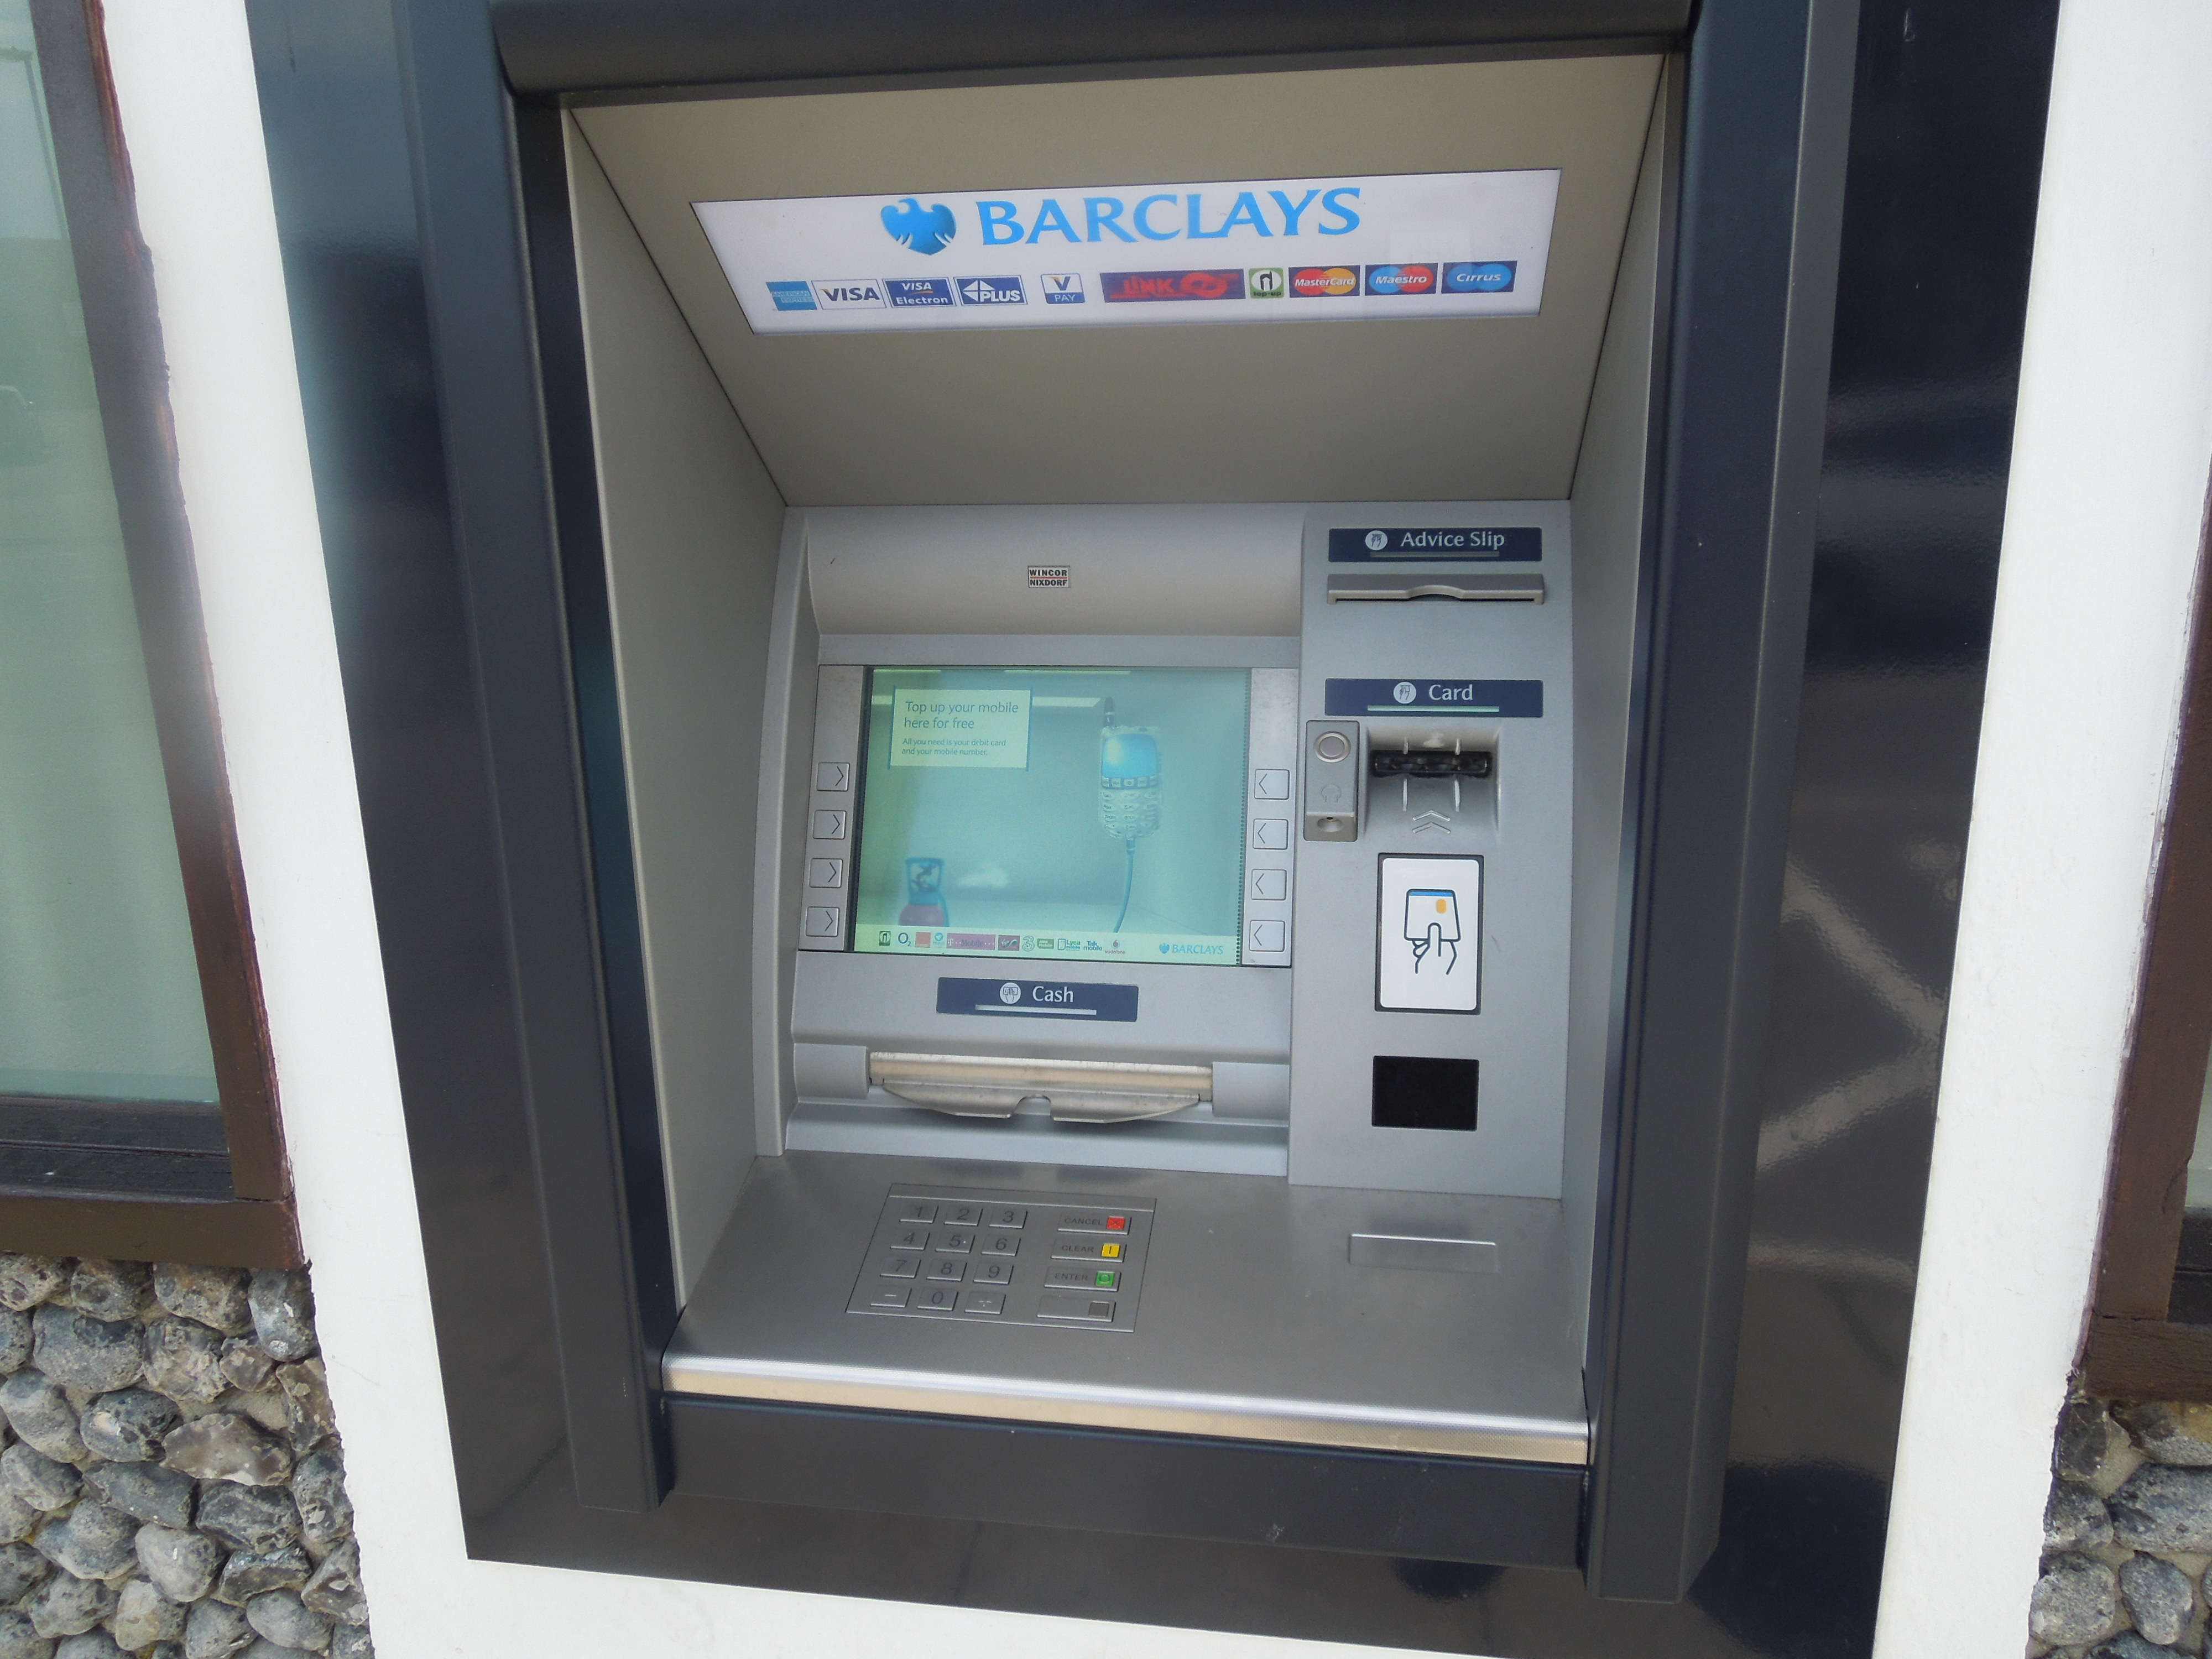 The Cleanest Cash Point In The World?